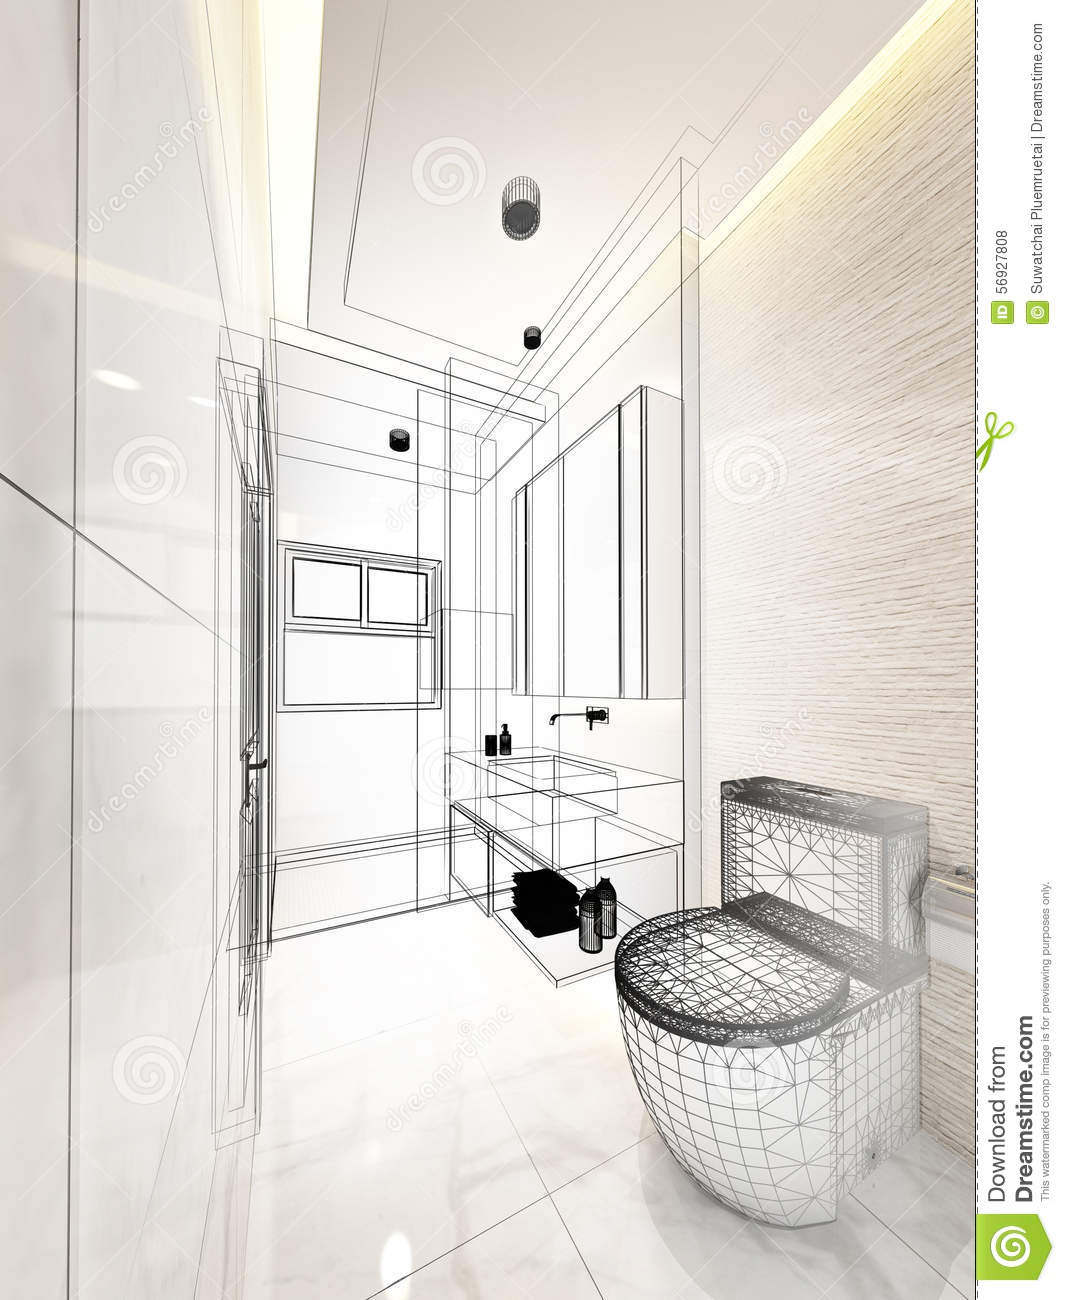 abstract sketch design of interior bathroom stock illustration image 56927808. Black Bedroom Furniture Sets. Home Design Ideas